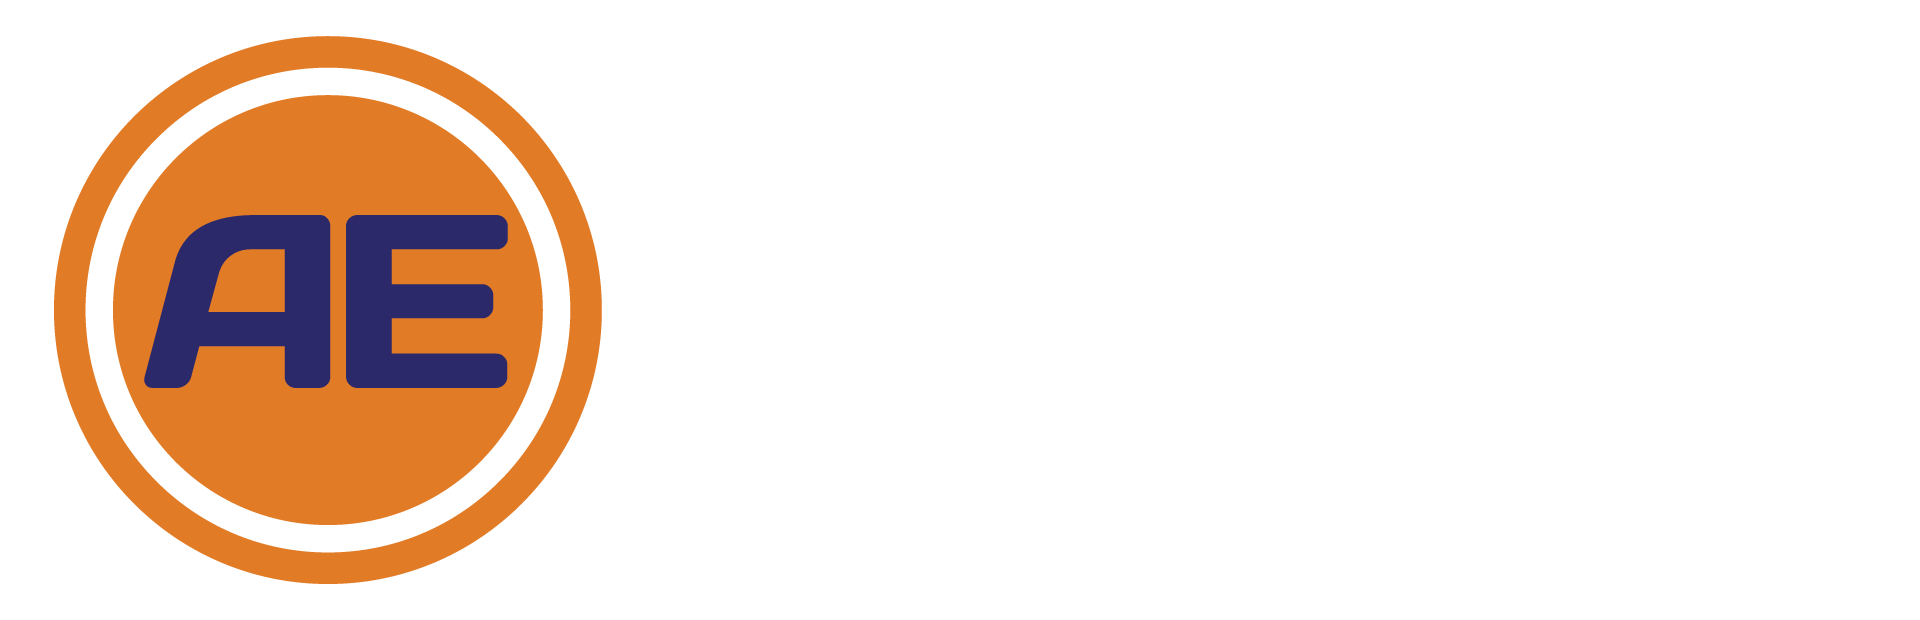 Adams Enclosures Limited